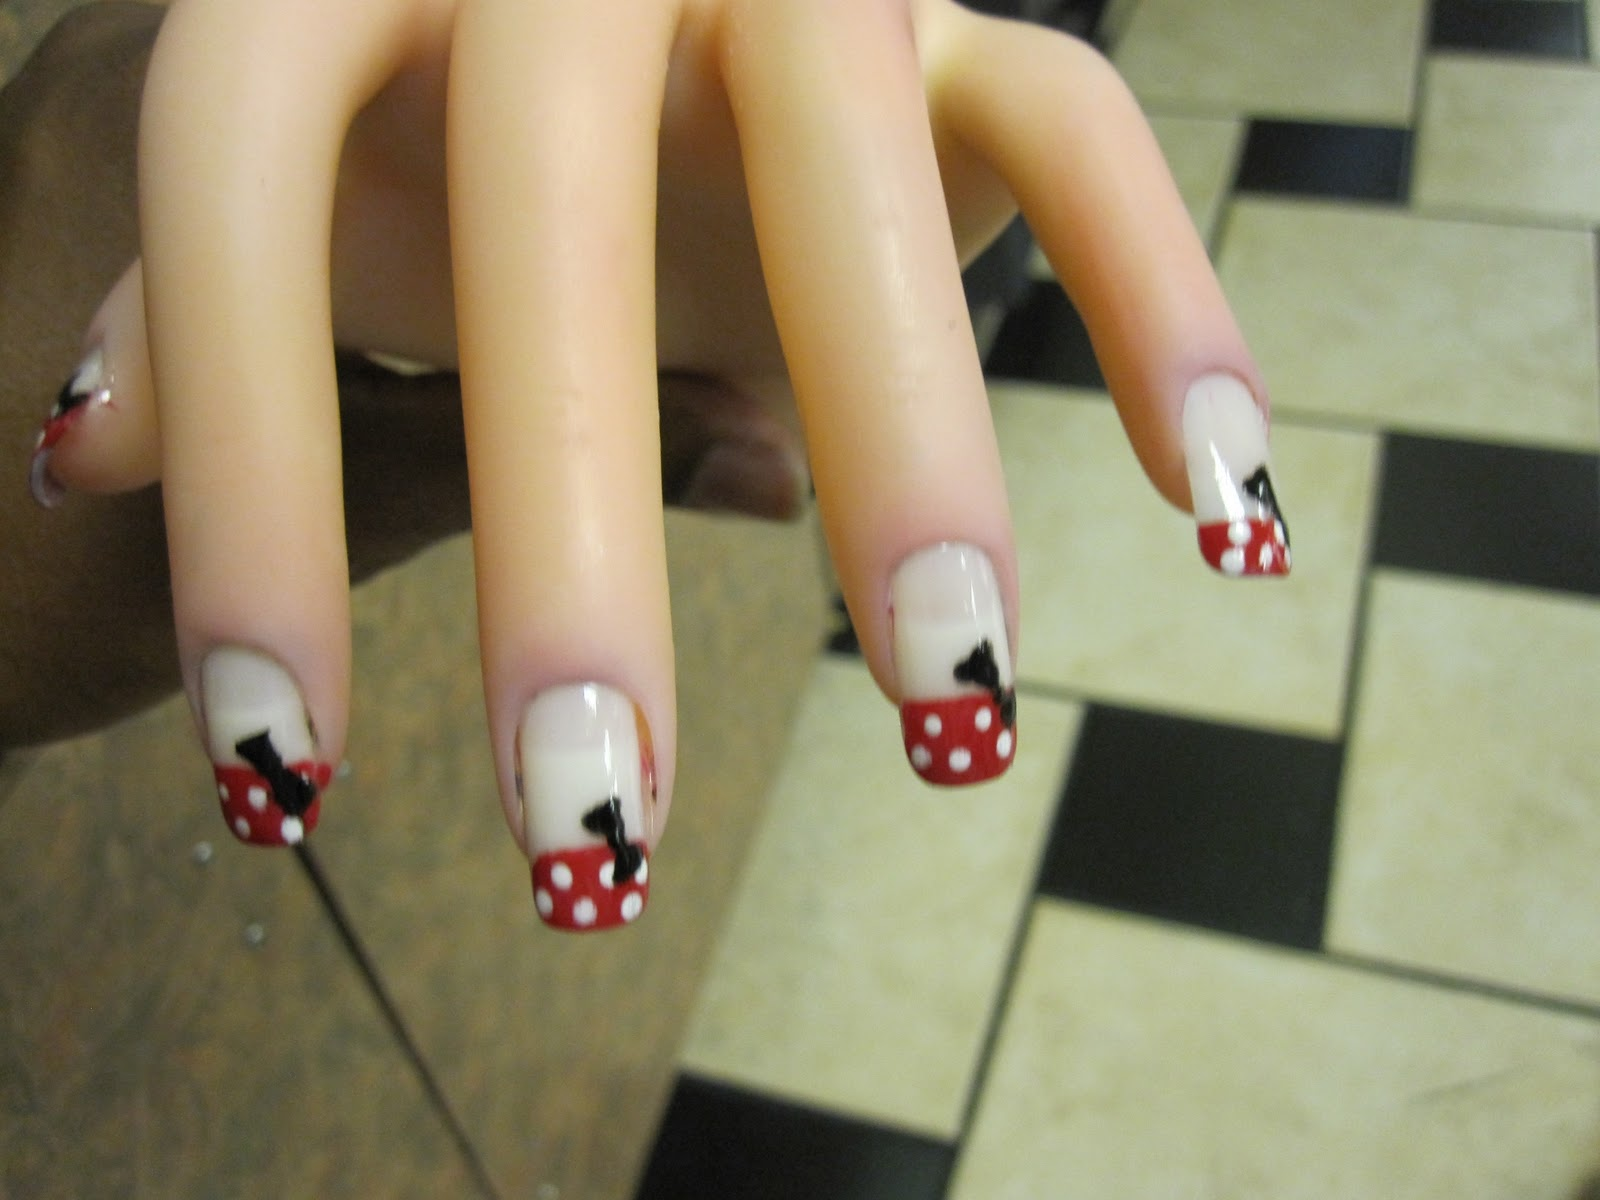 Nail Art Las Vegas: The Nail Art Las Vegas begins to evolve..........